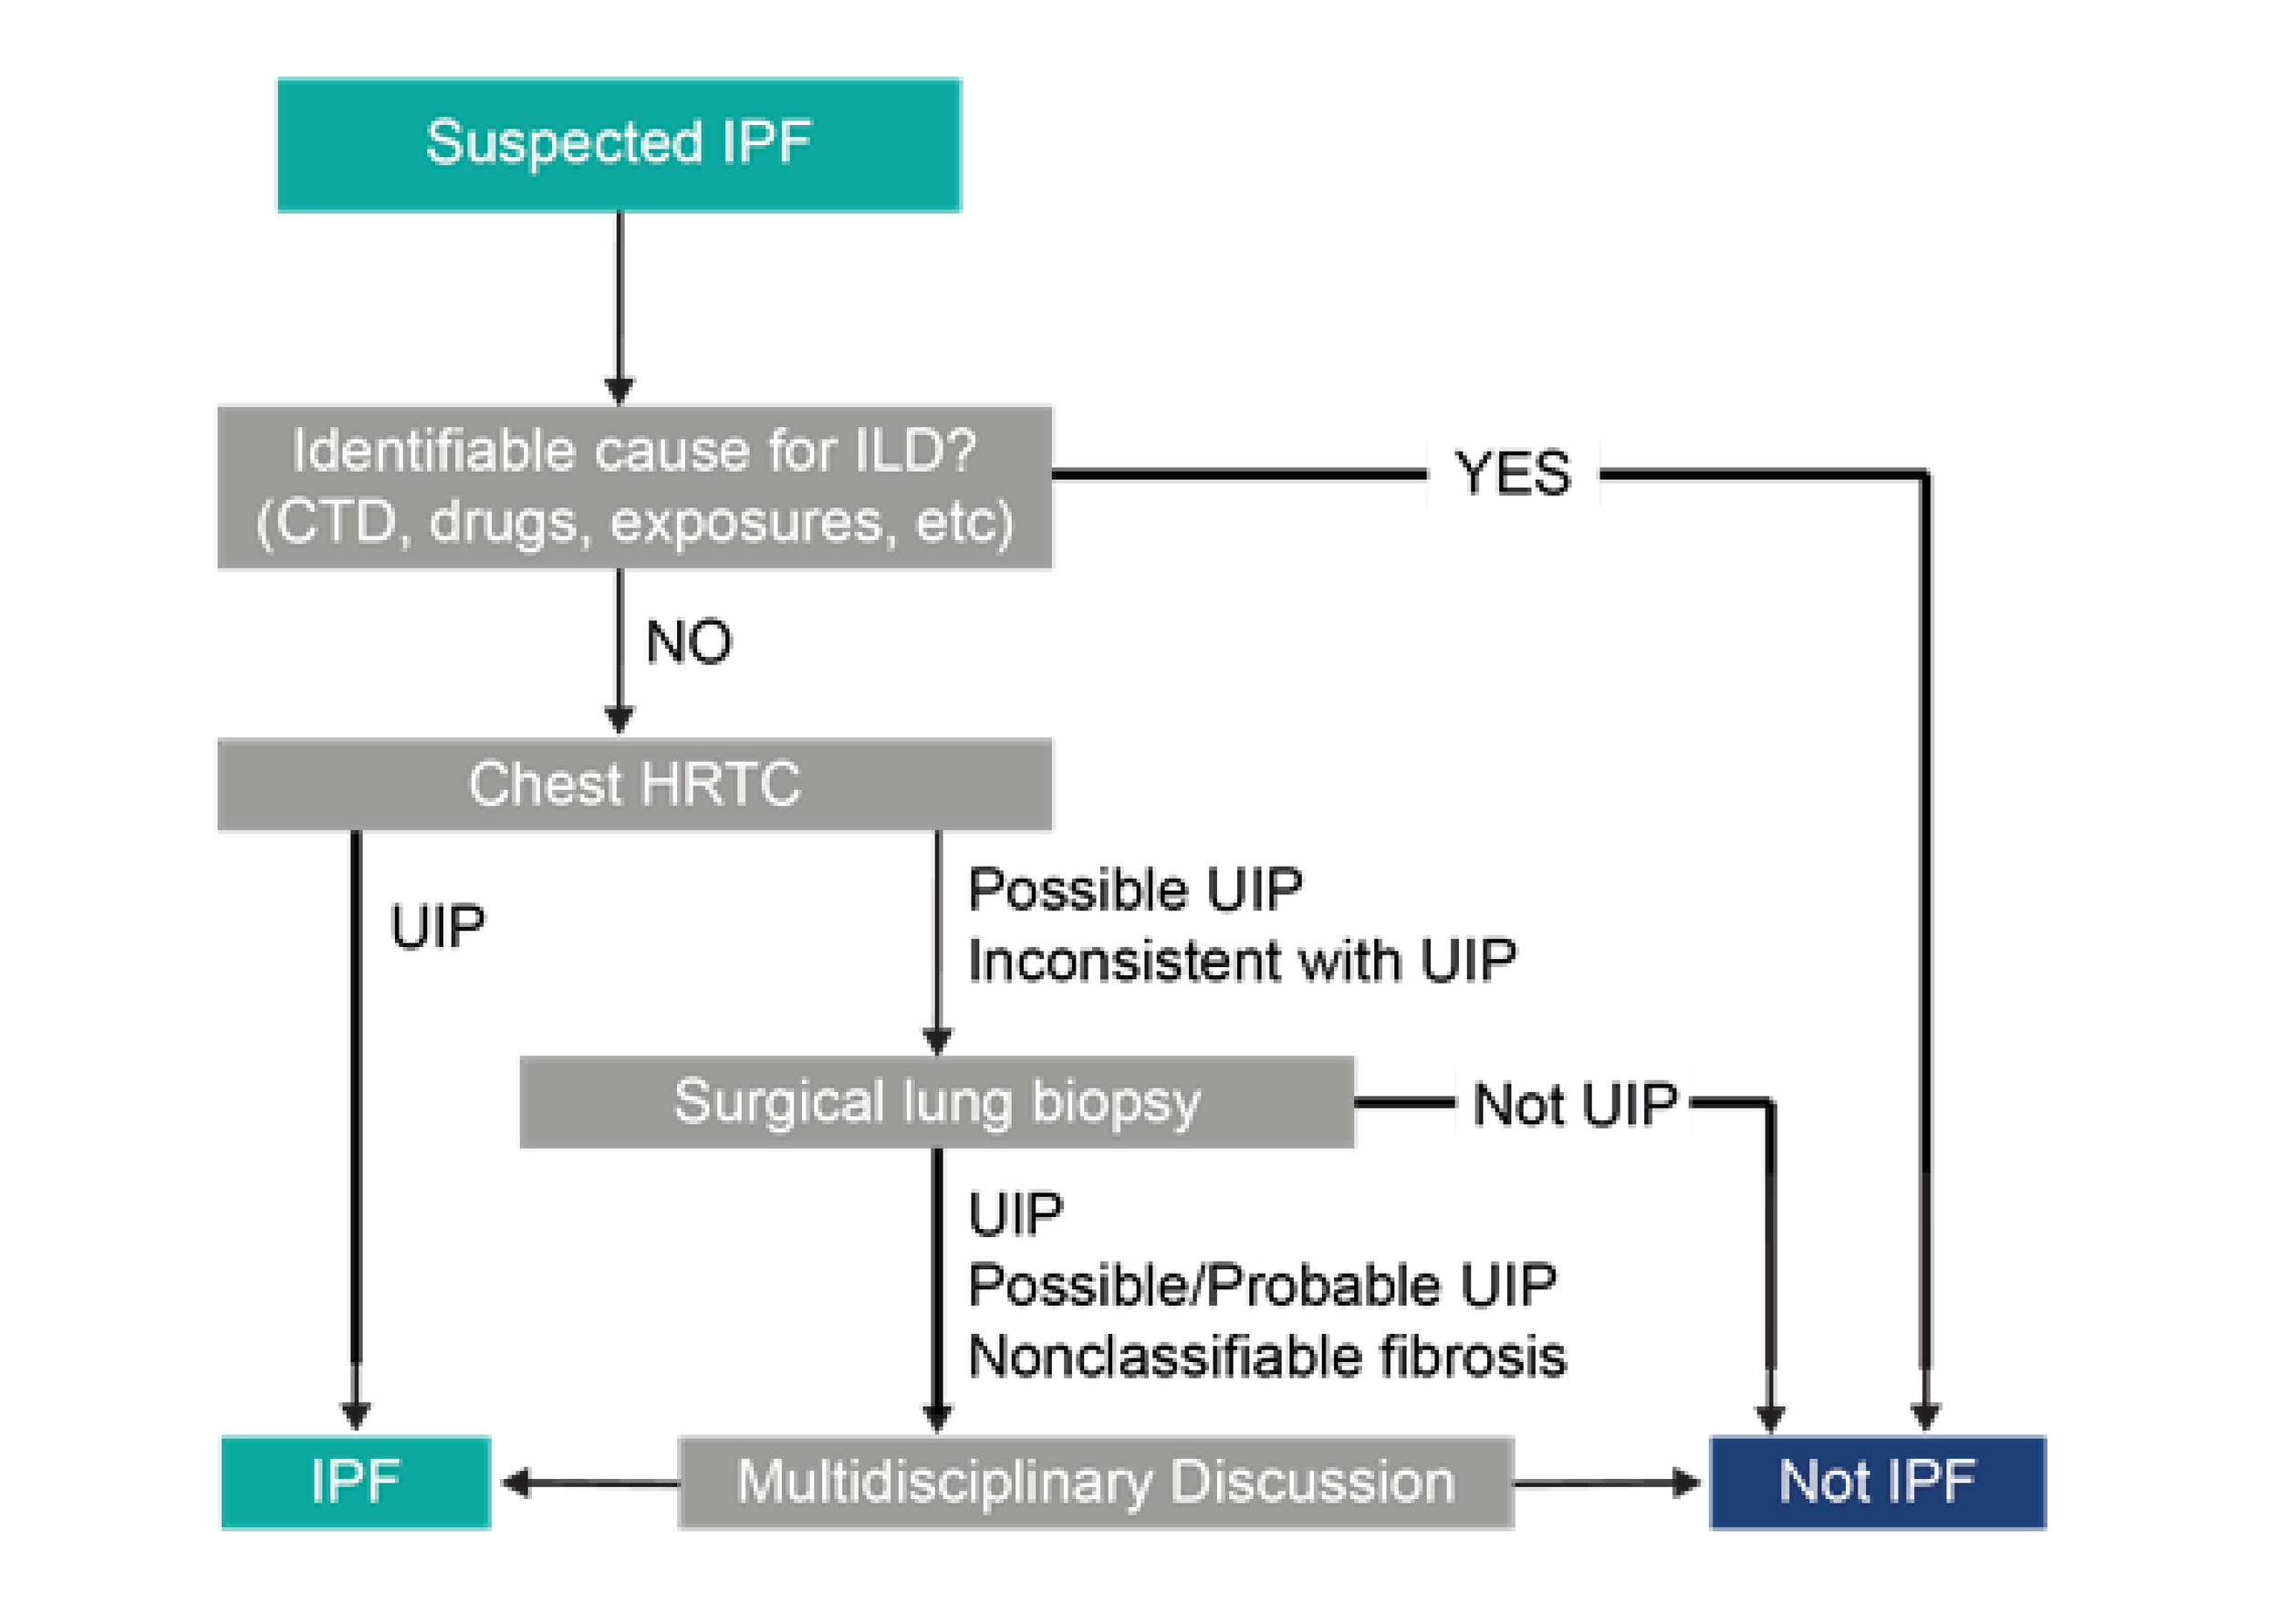 Figure 8: IPF diagnosis patthway (adapted from: ²¹)